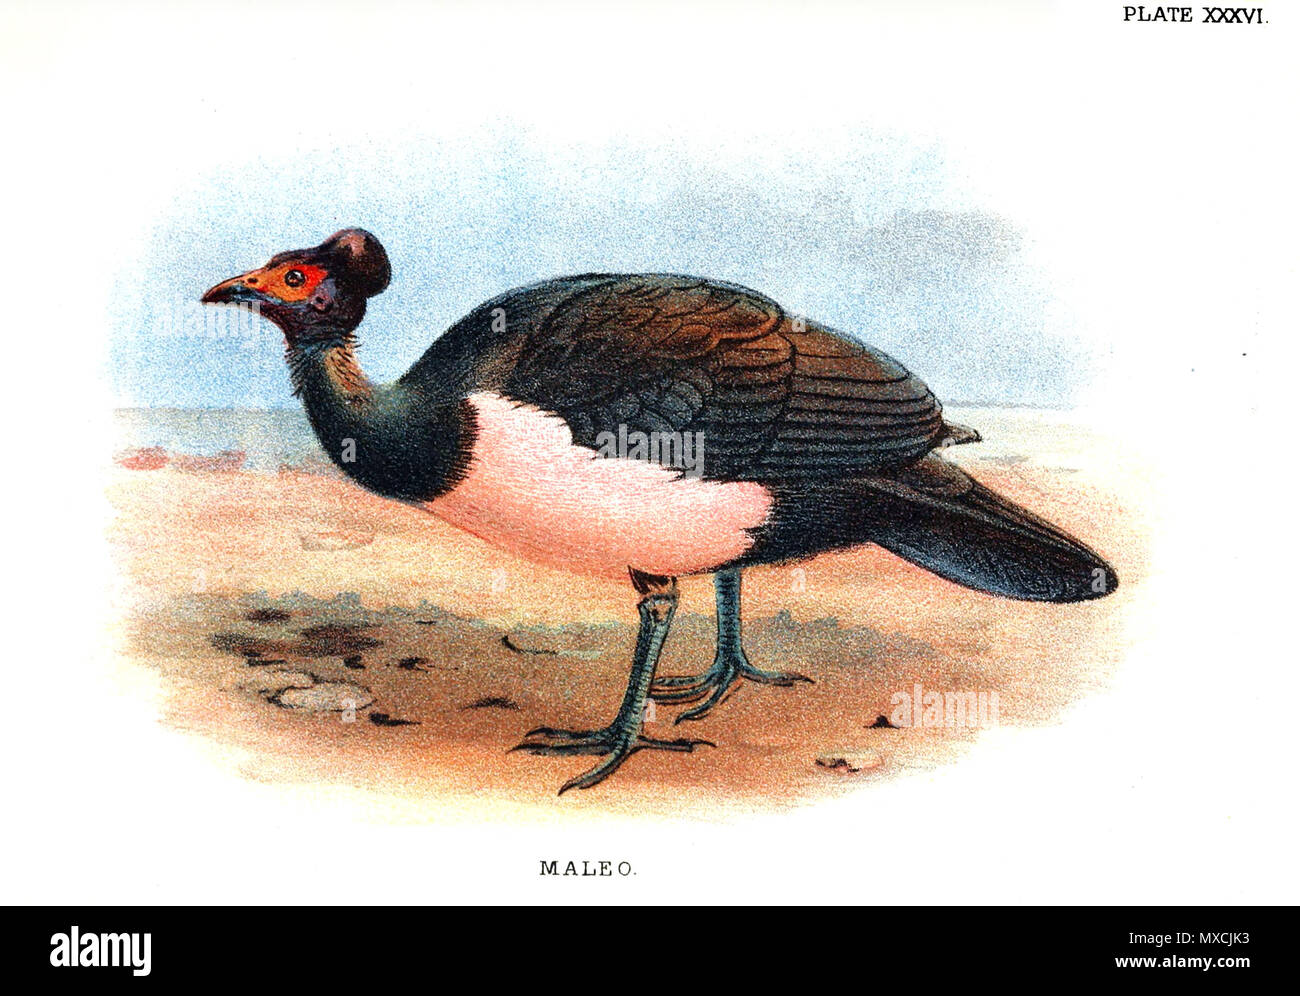 . antique lithograph Print of 'MALEO (Celebes, Sanghir Islands, Indonesia)' published in 1896 for 'Lloyd's Natural History of Game Birds' by W.R.Ogilvie-Grant. Real size of printed area is 5' x 7' (13x18cm). published in 1896. This file is lacking author information. 390 Maleo bird - Stock Image